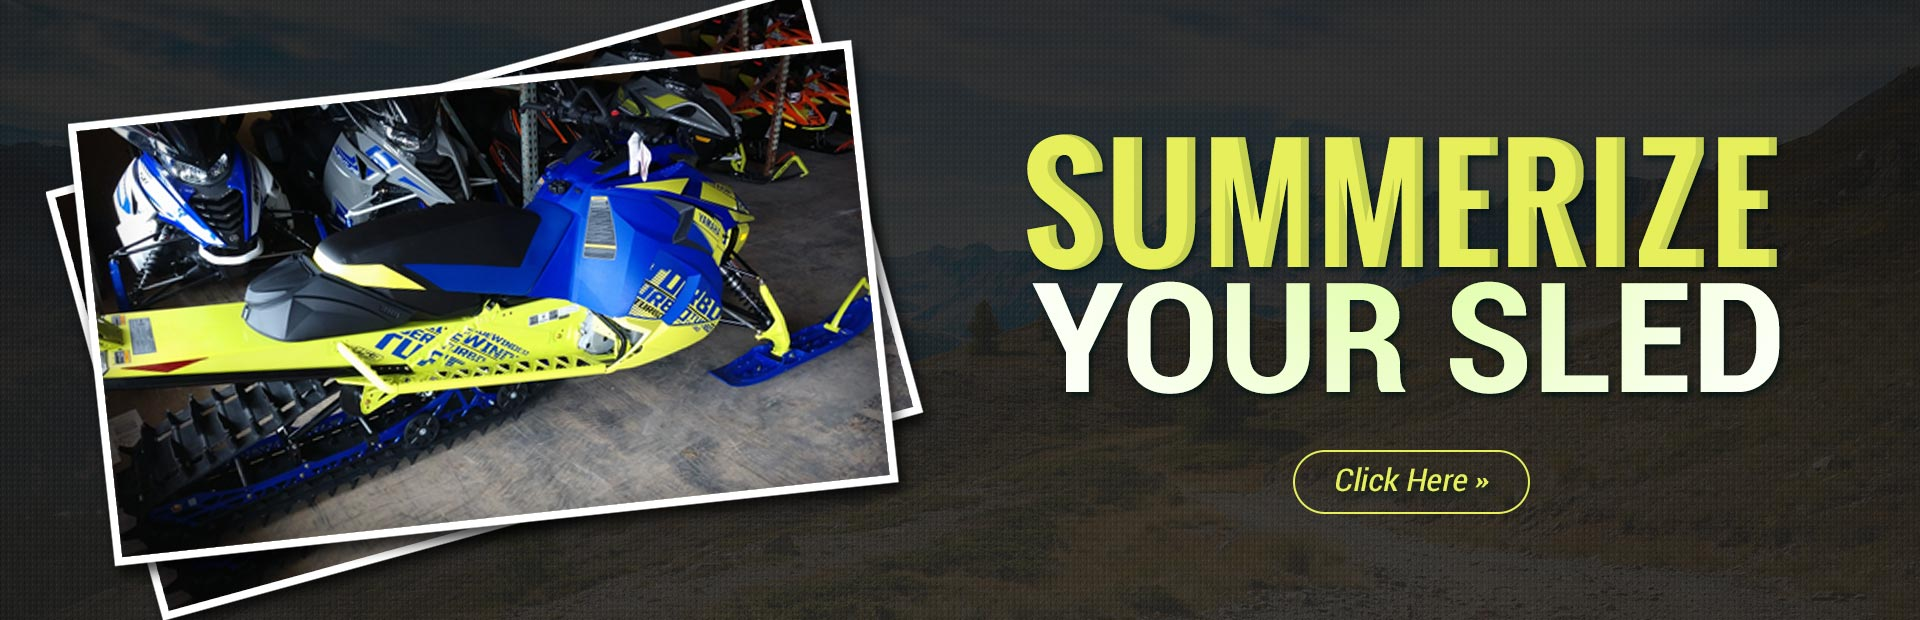 Summerize Your Sled: Contact us for details.